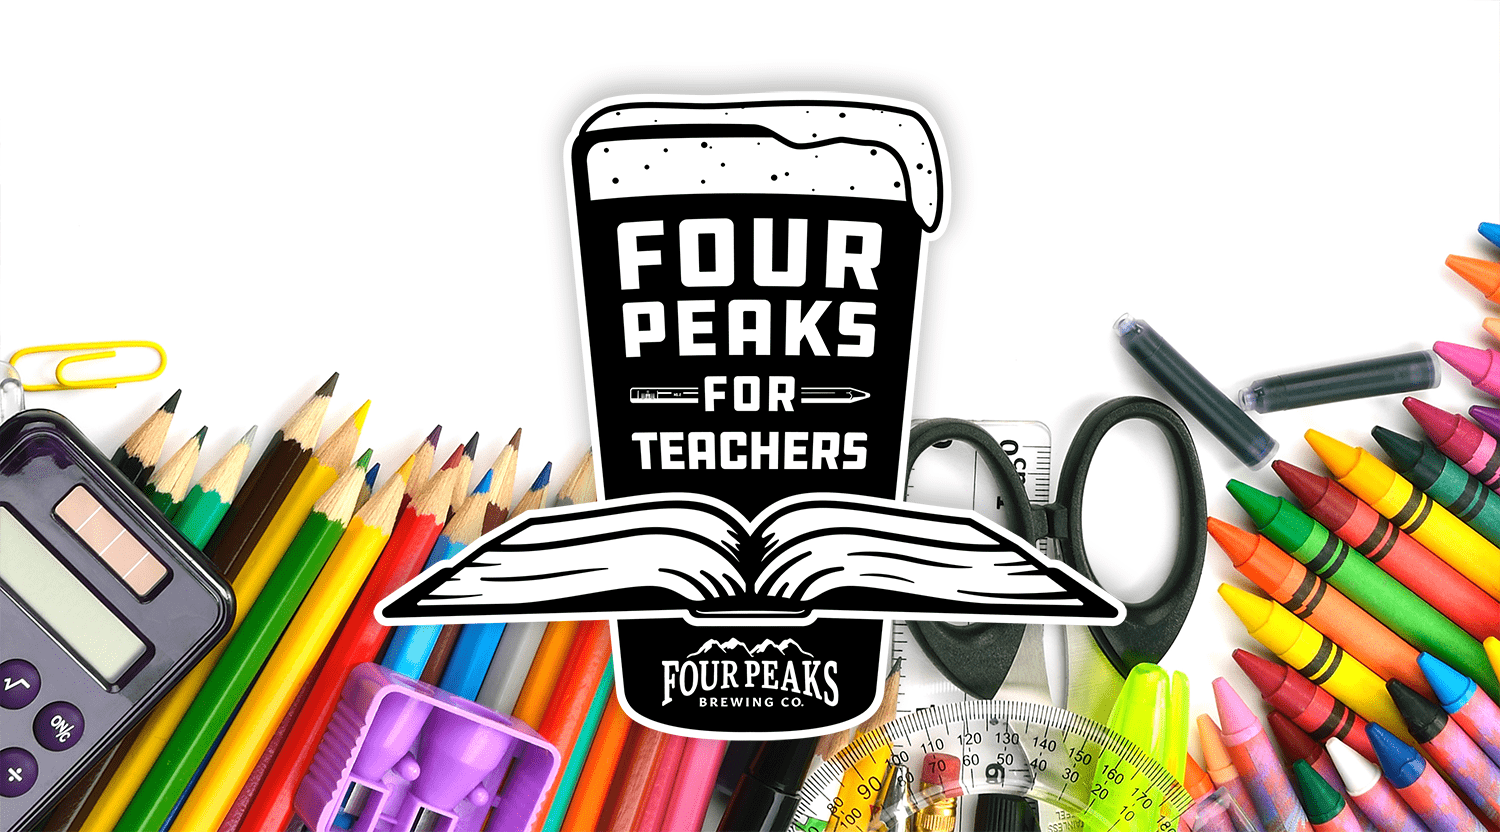 Four Peaks For Teachers 2020 – wide